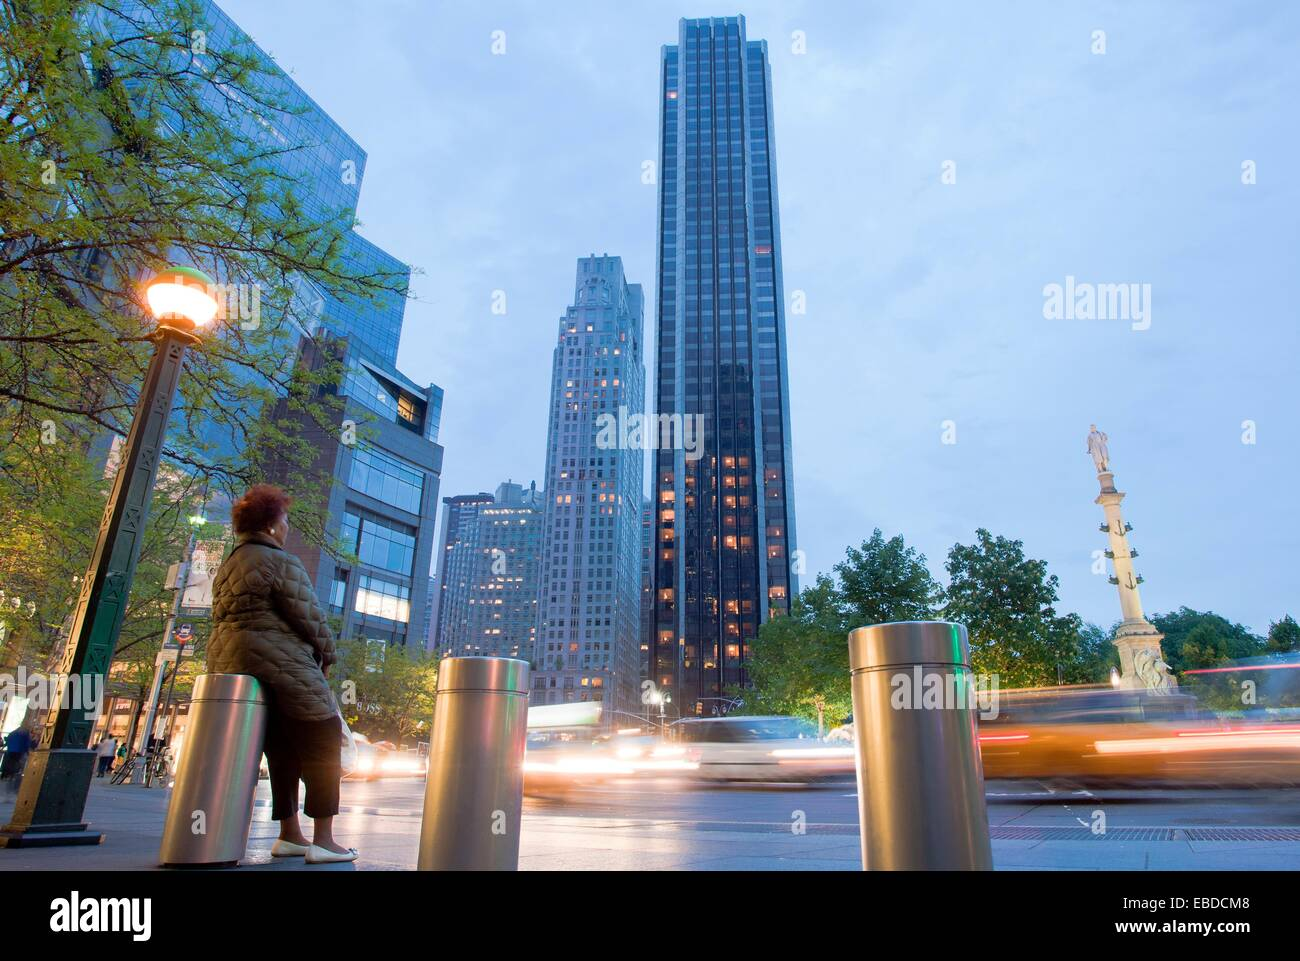 On background trump international hotel and tower columbus circle midtown manhattan new york city usa